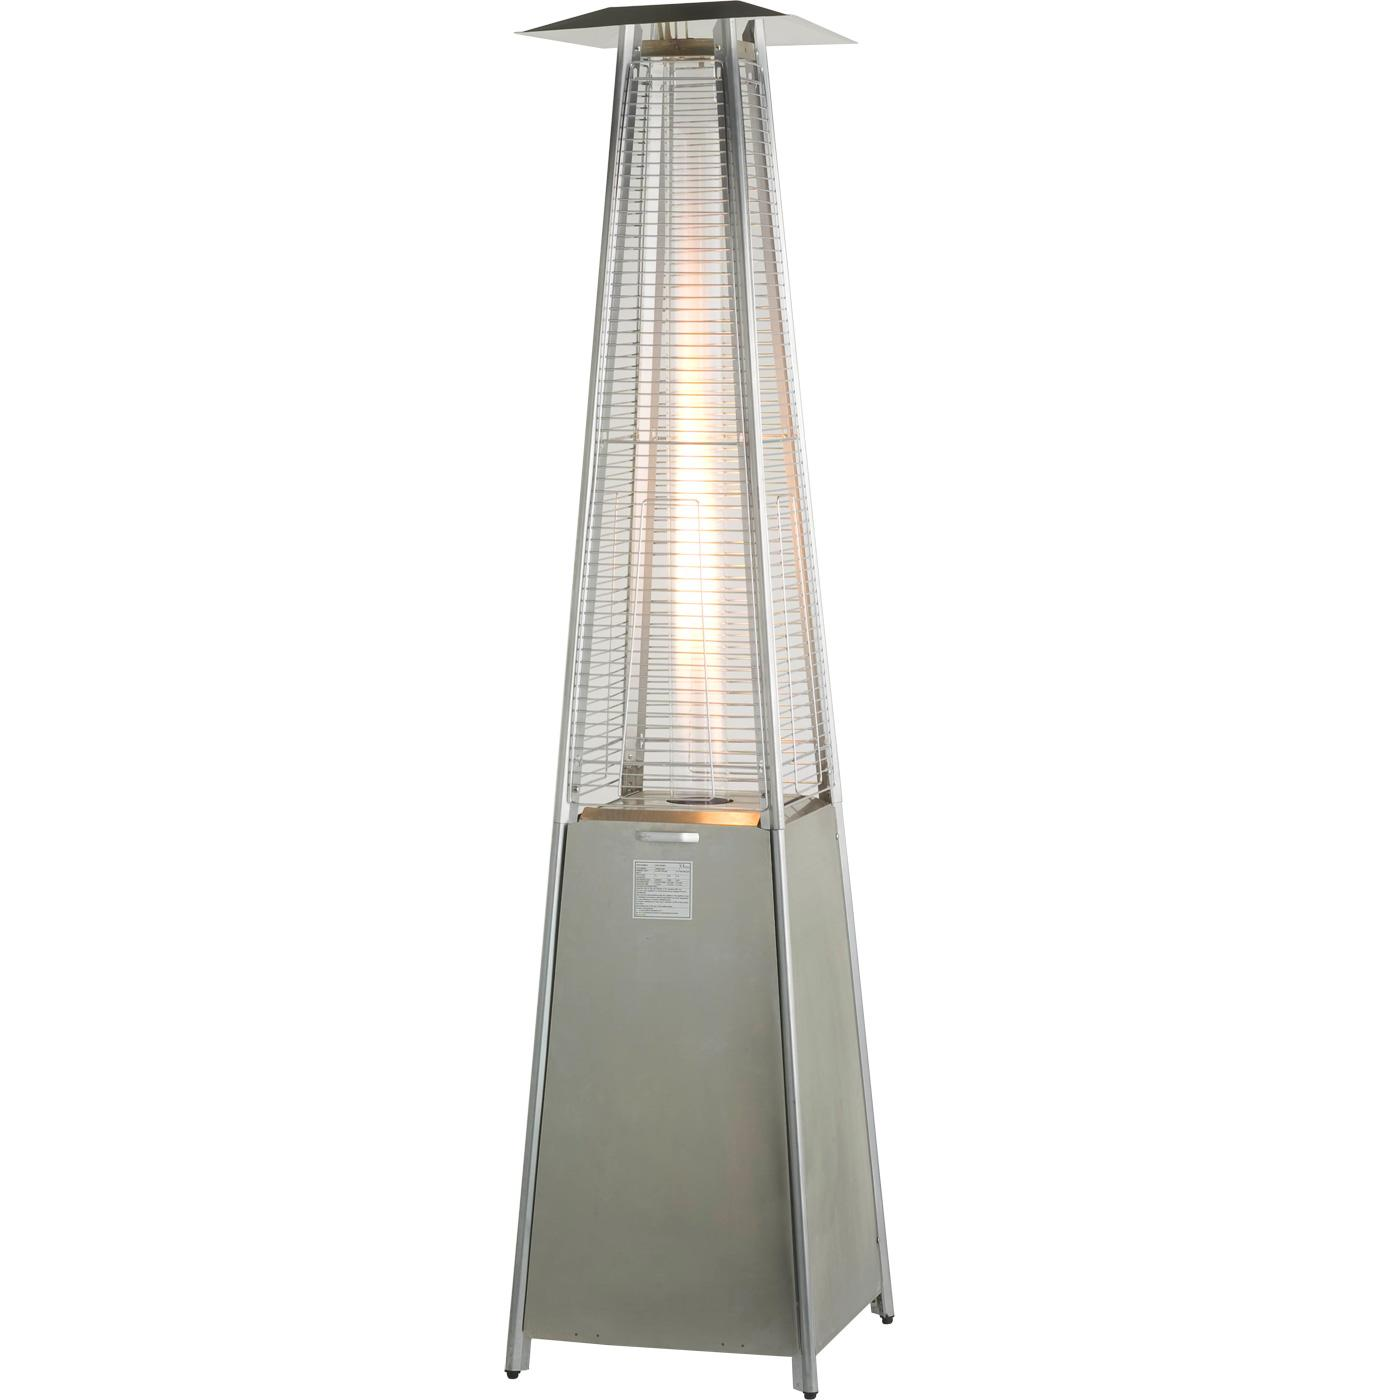 stainless steel categories depot btu heating outdoor en the premium p outdoors furniture heaters canada patio home heater